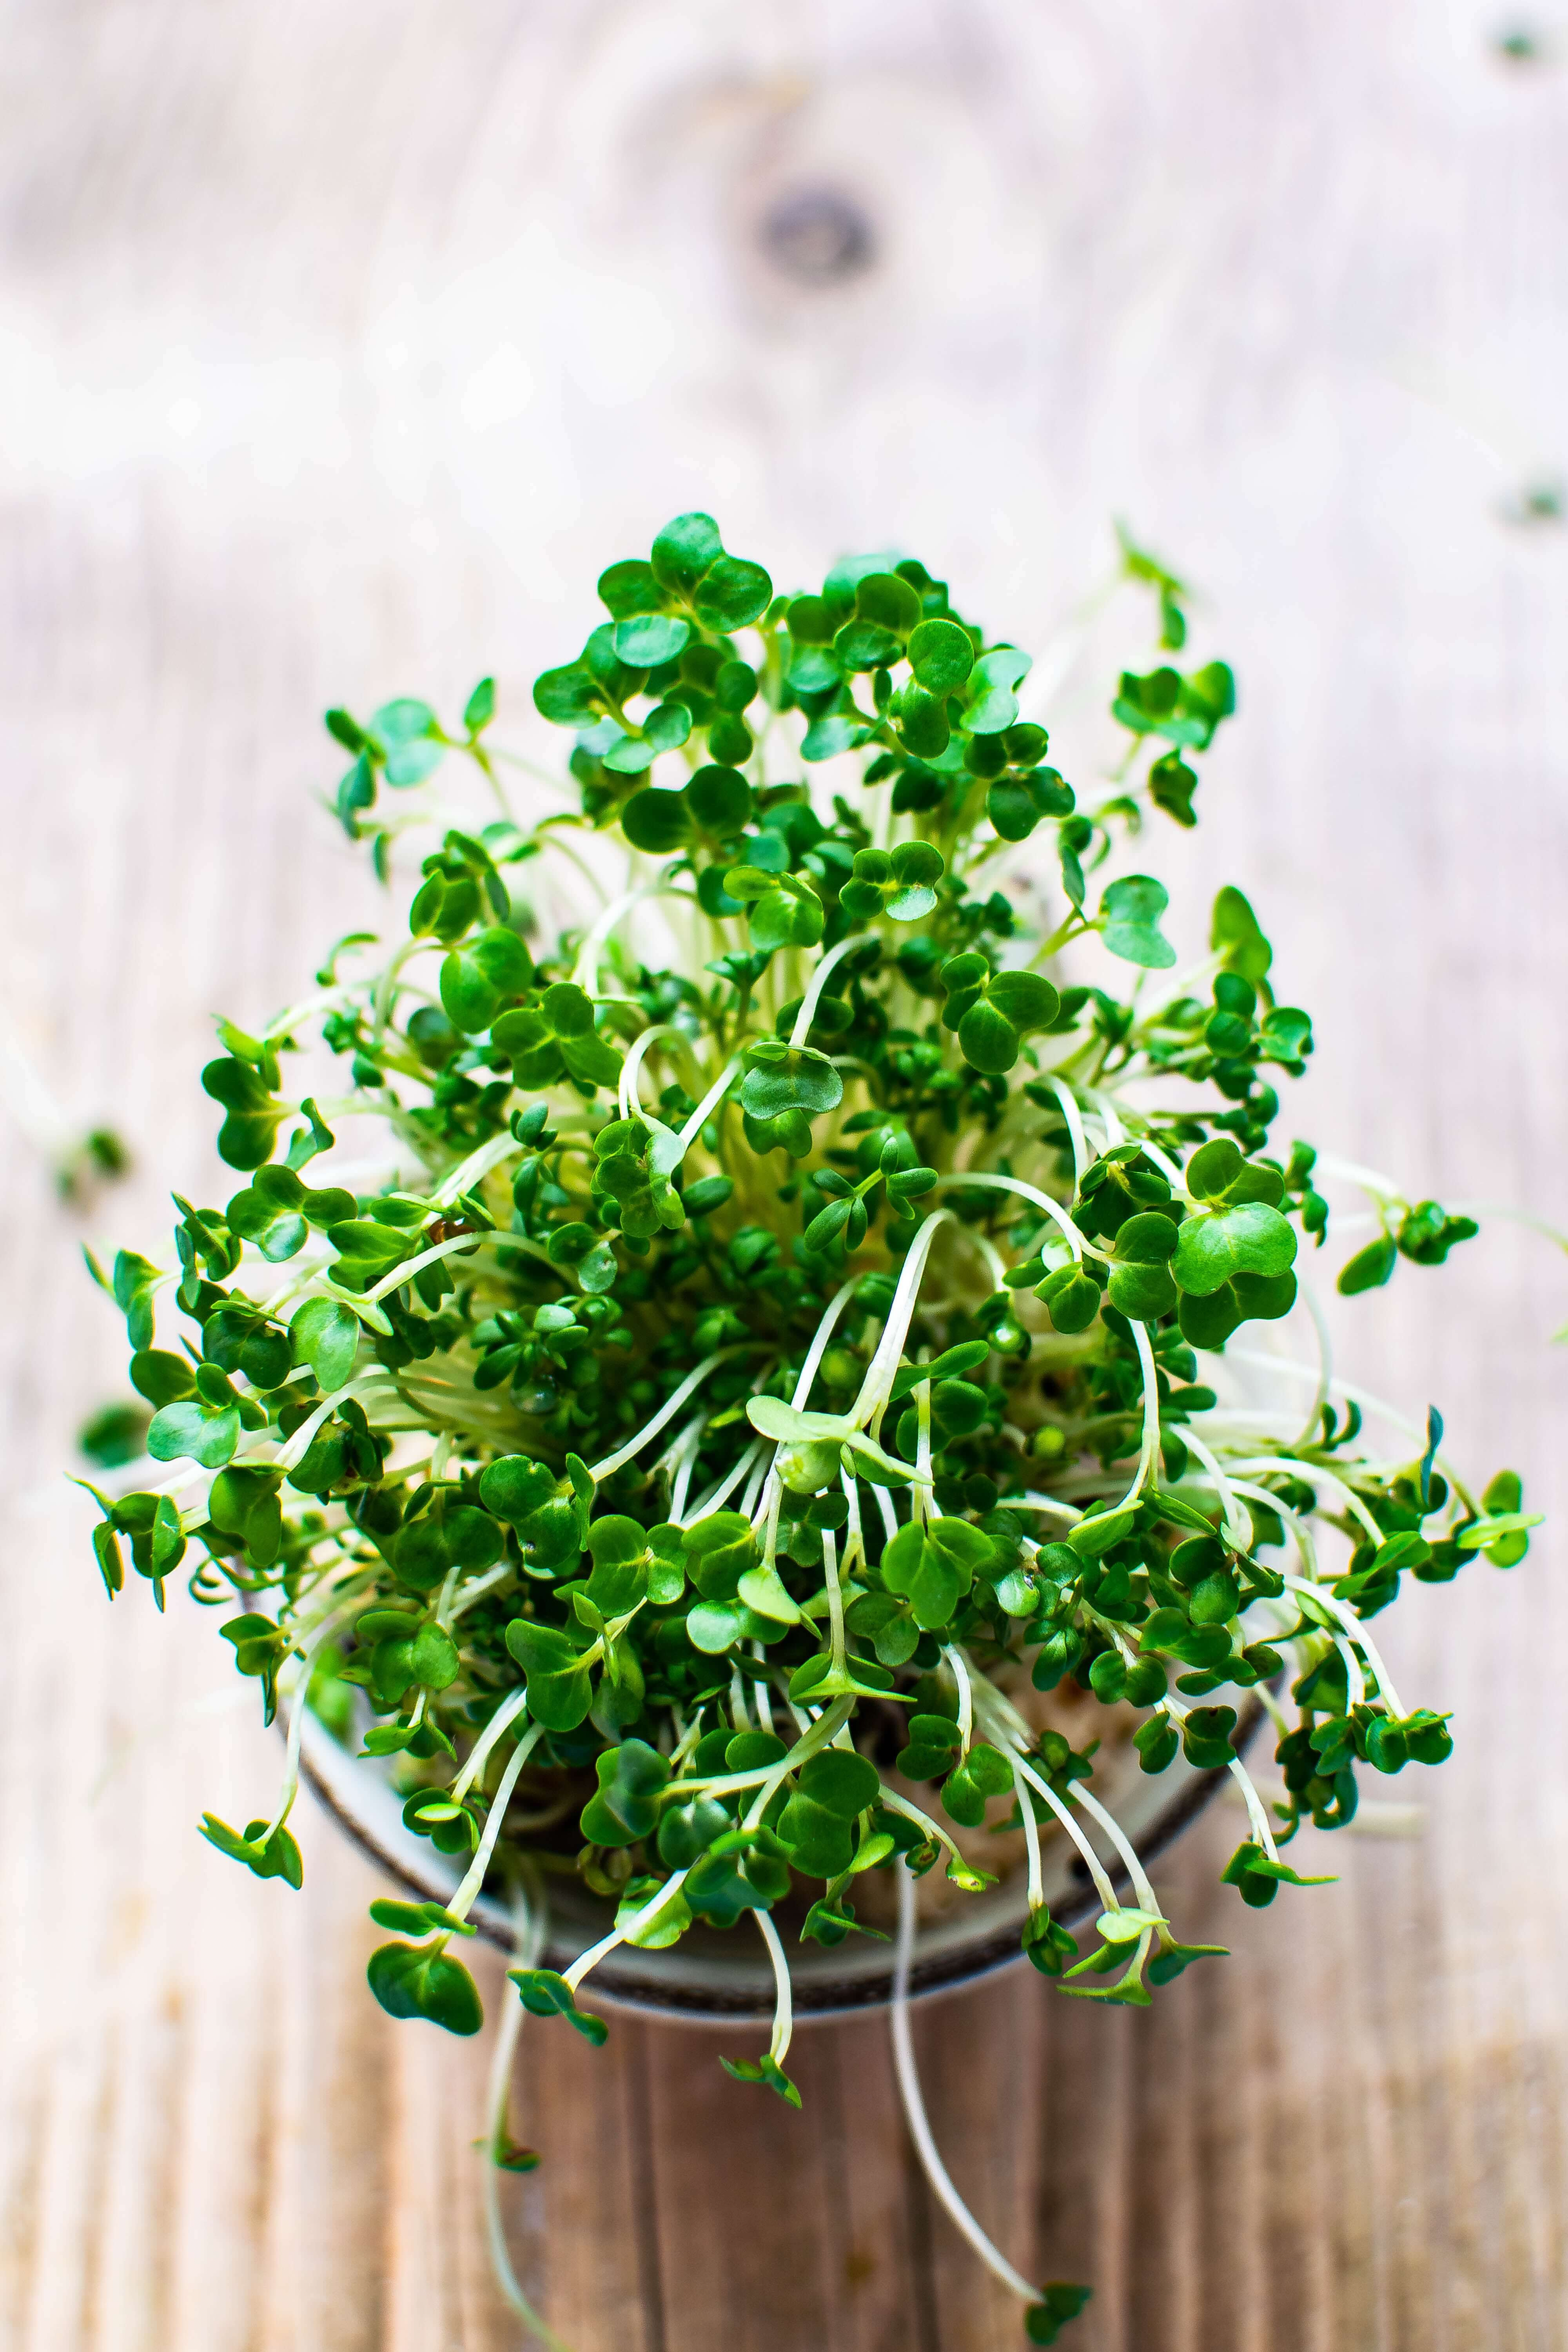 Broccoli sprouts in a pot